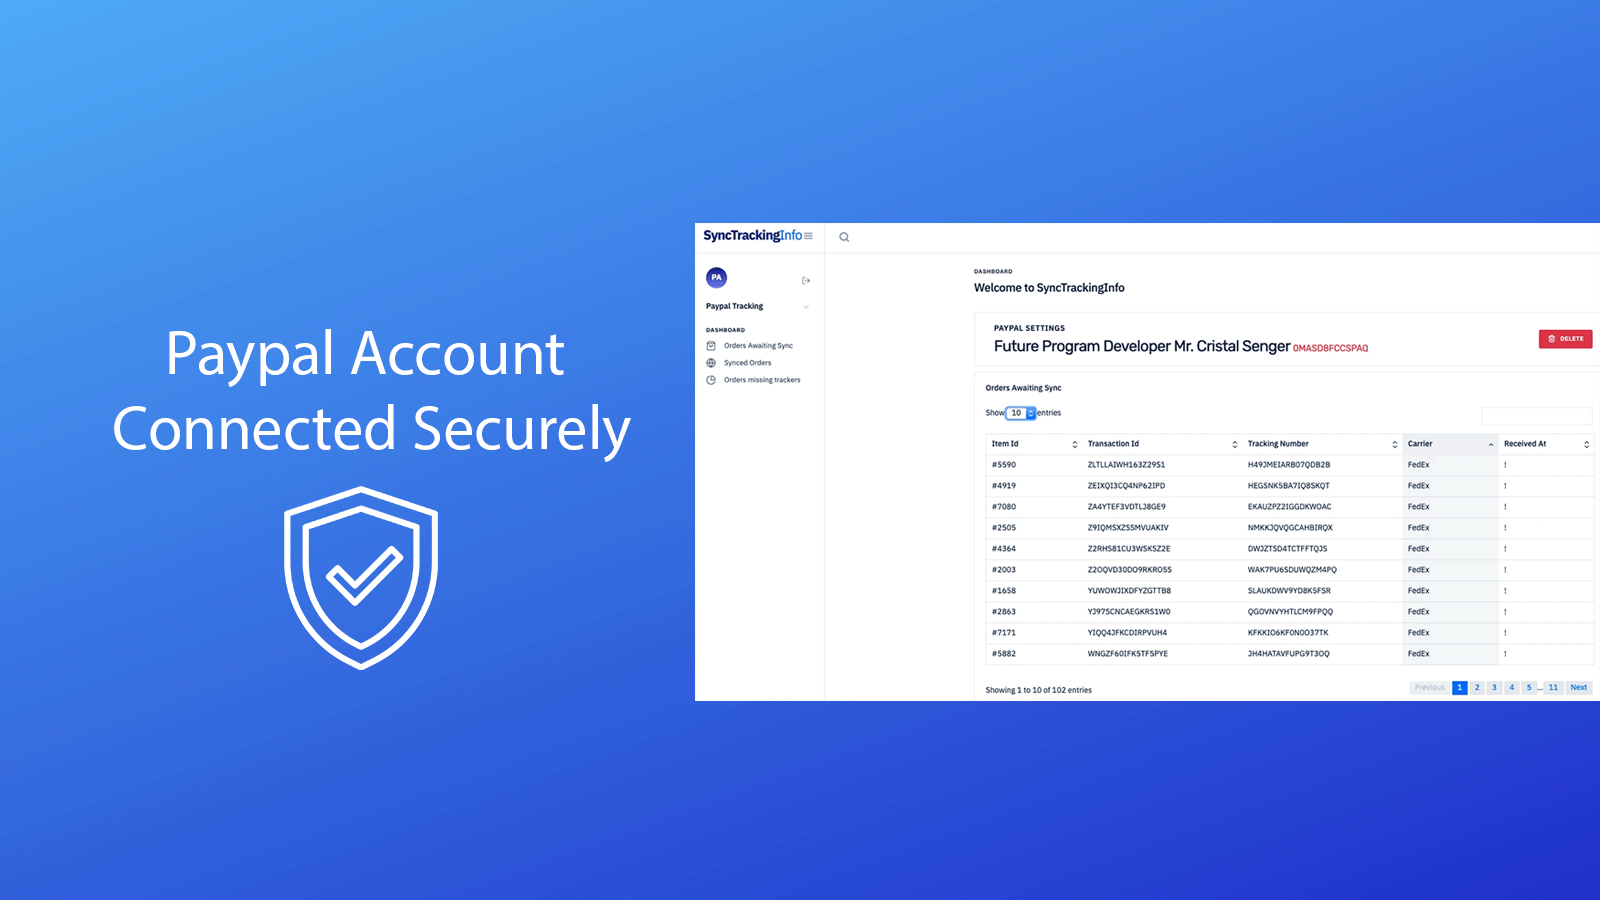 Paypal Account connected securely